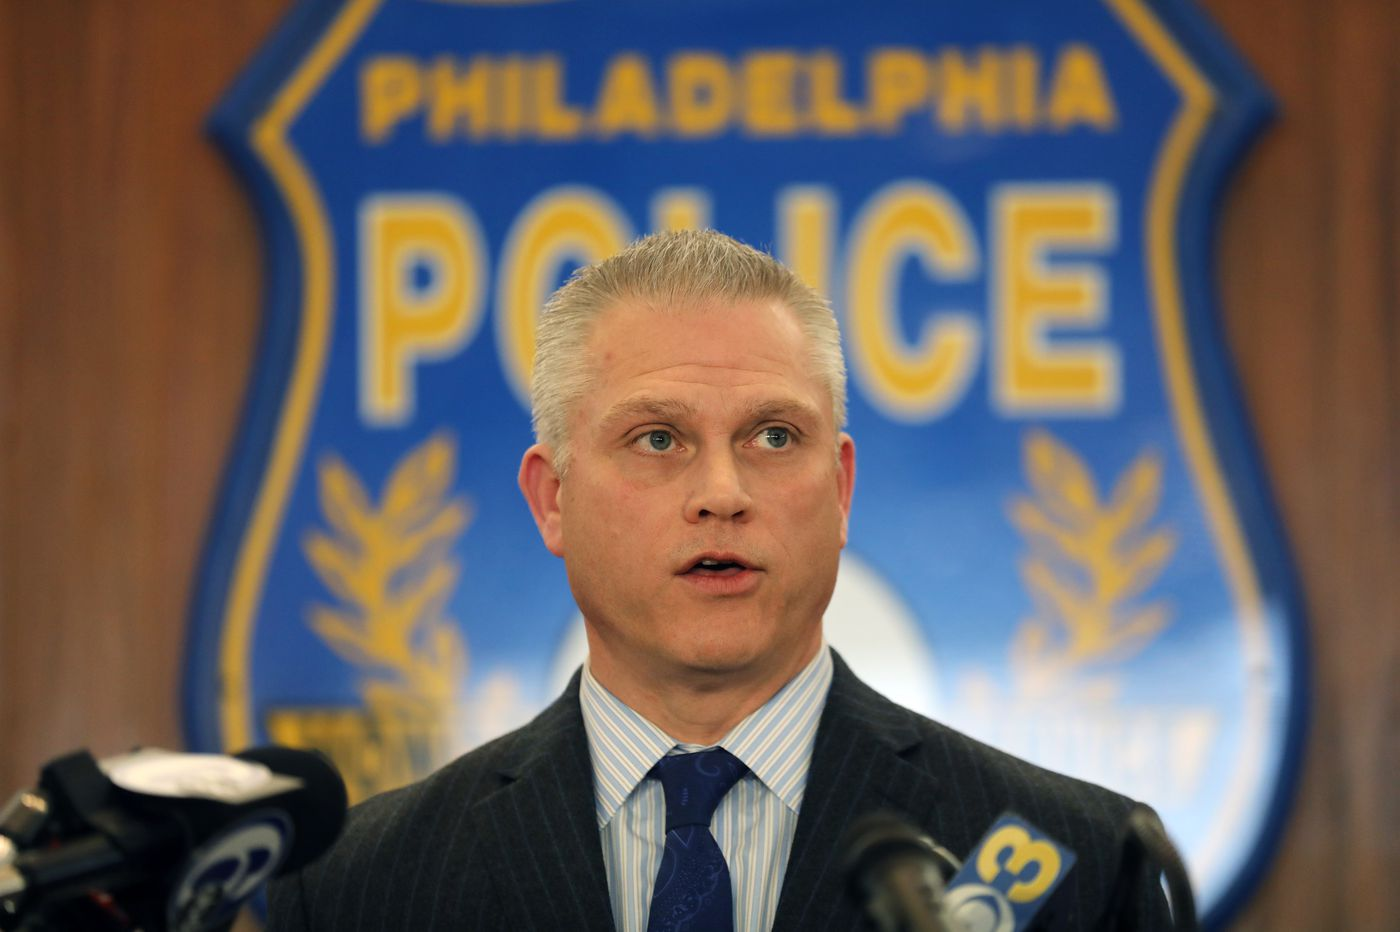 Suspect arrested in shooting death of Philly police commander's son in FDR Park